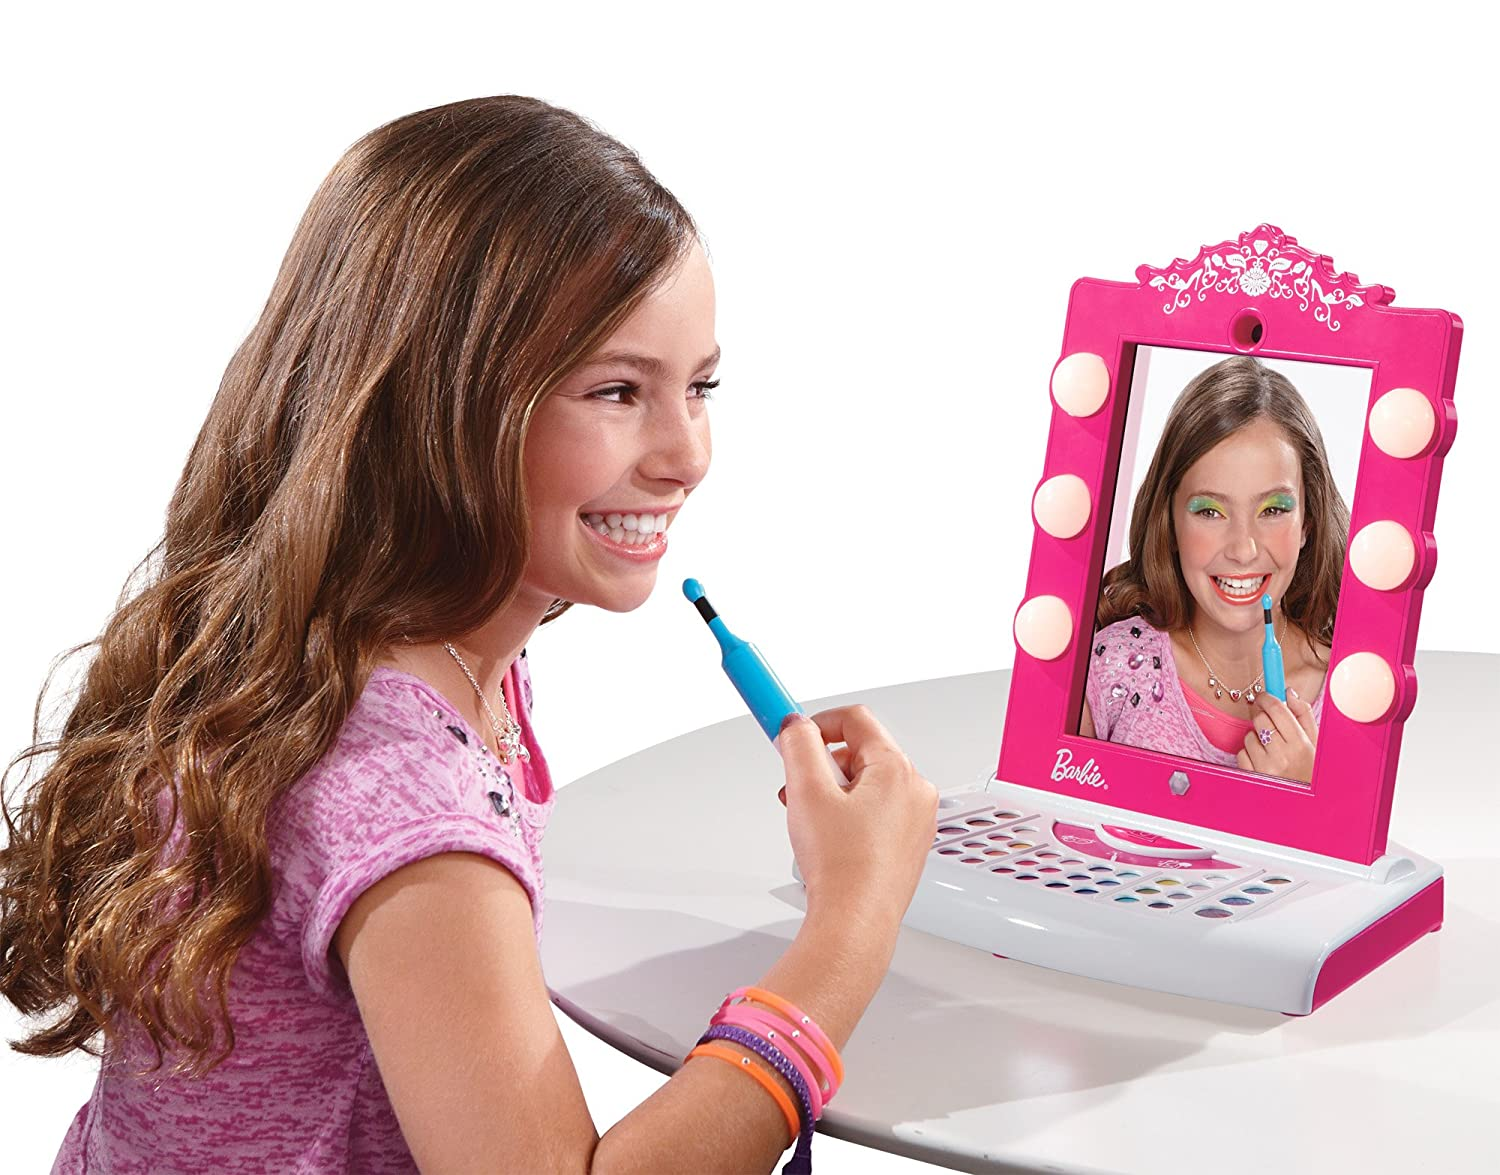 Imaginative Toys For Girls : Amazon.com: barbie digital makeover mirror: toys & games